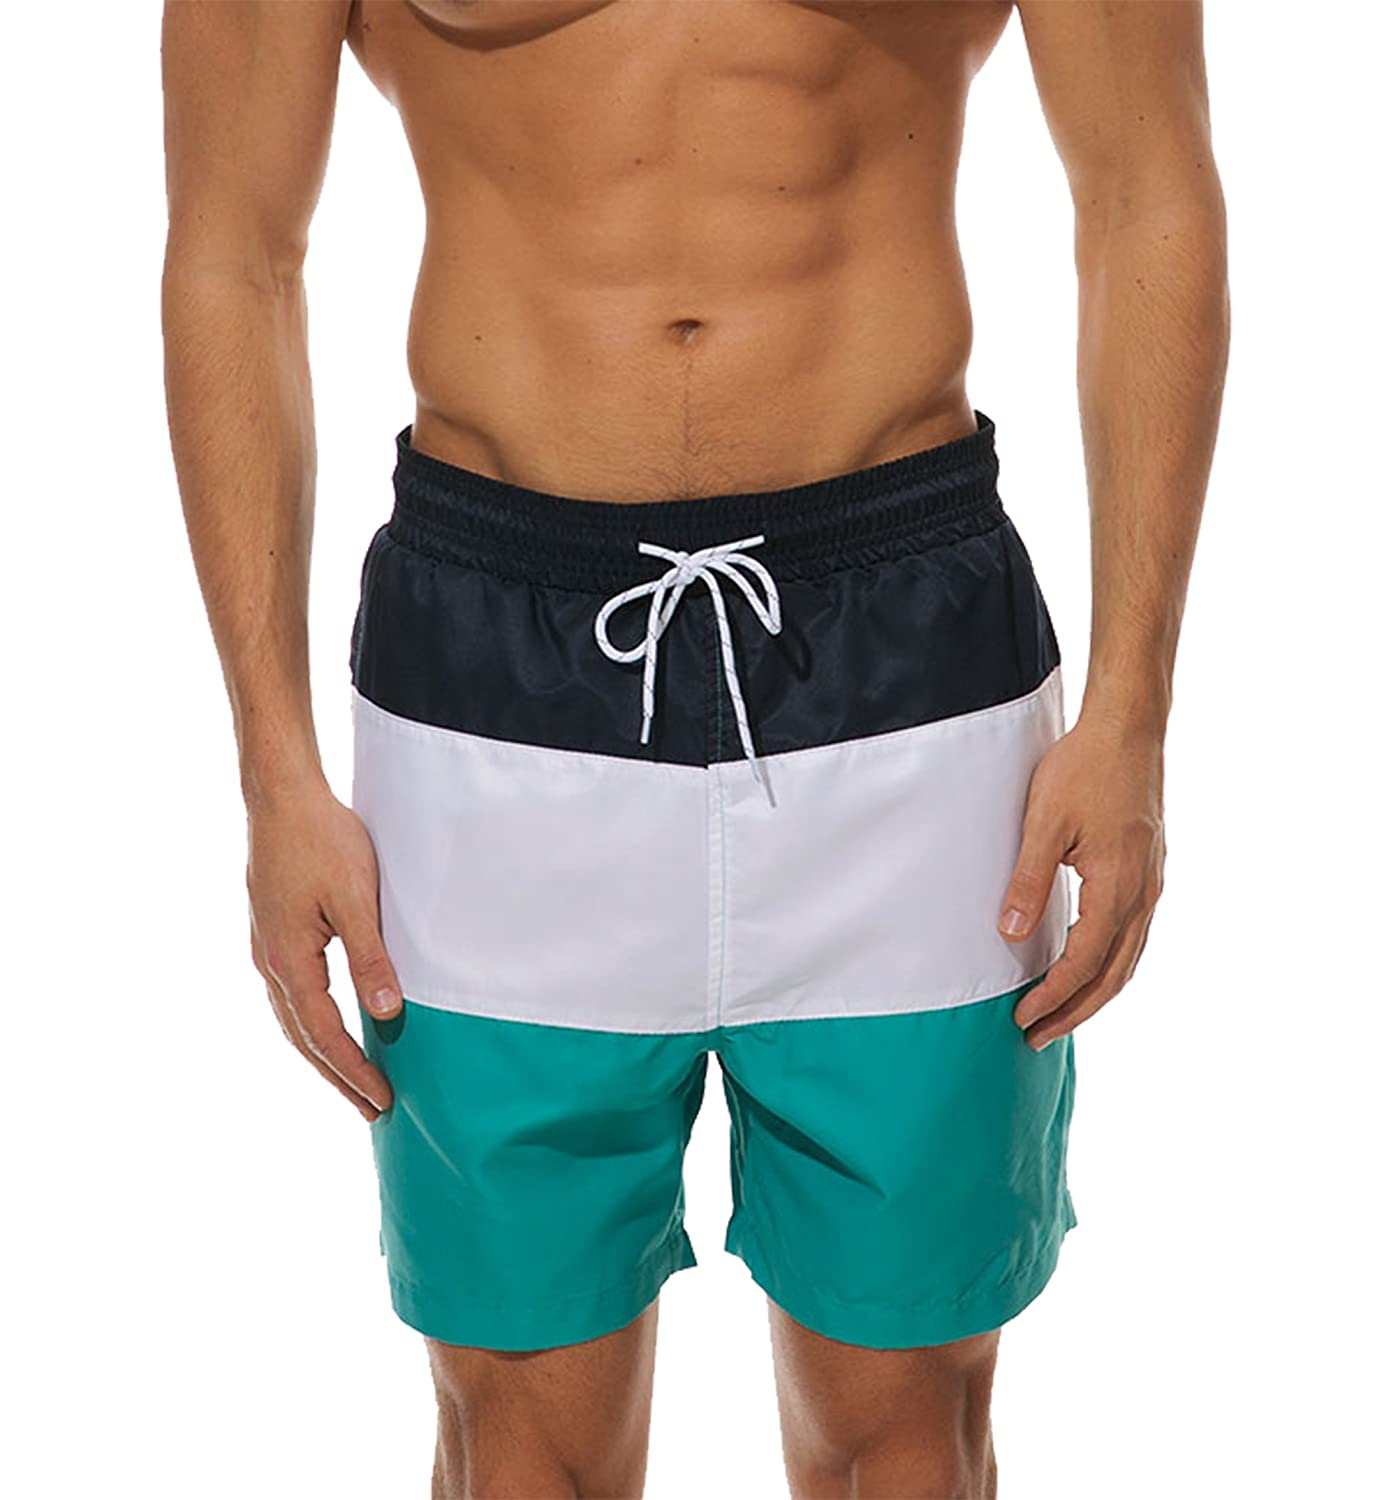 WENER Men's Short Swim Trunks,Best Board Running Swimming Beach Surfing Shorts,Quick Dry Breathable with Mesh Lining